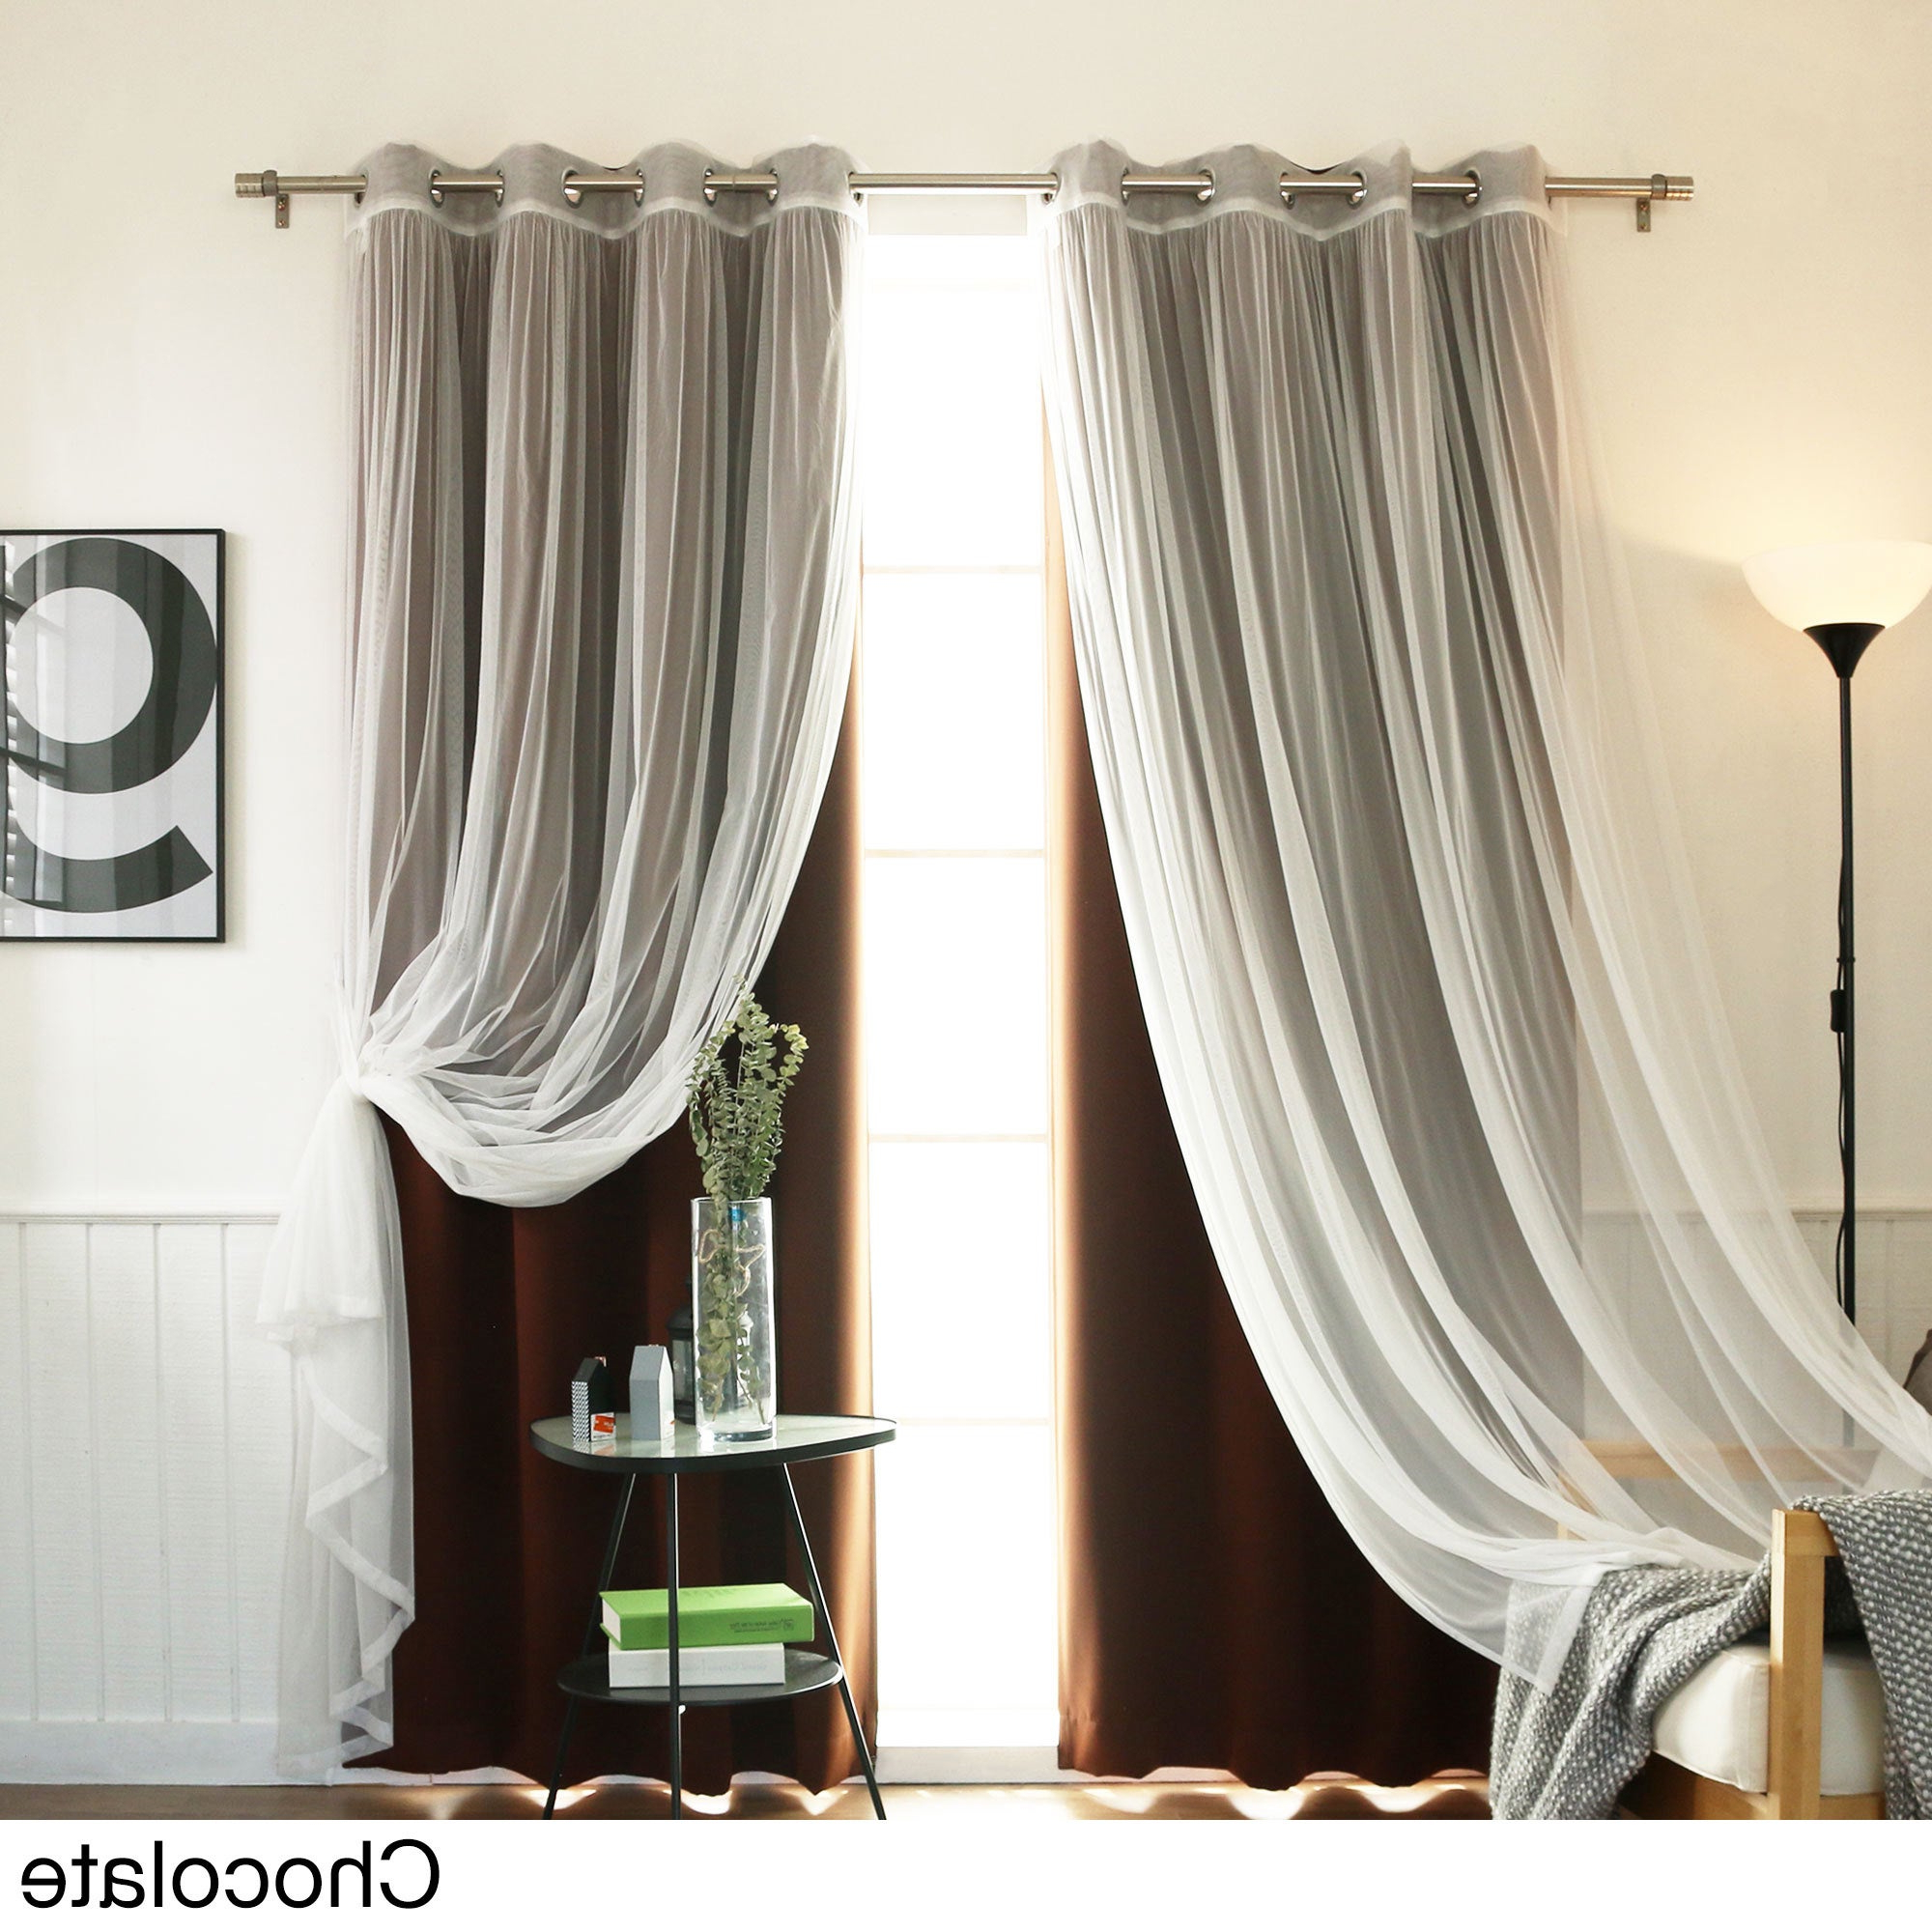 Mix And Match Blackout Tulle Lace Sheer Curtain Panel Sets In Most Popular Aurora Home Mix And Match Blackout Tulle Lace Sheer 4 Piece Curtain Panel Set (Gallery 6 of 20)